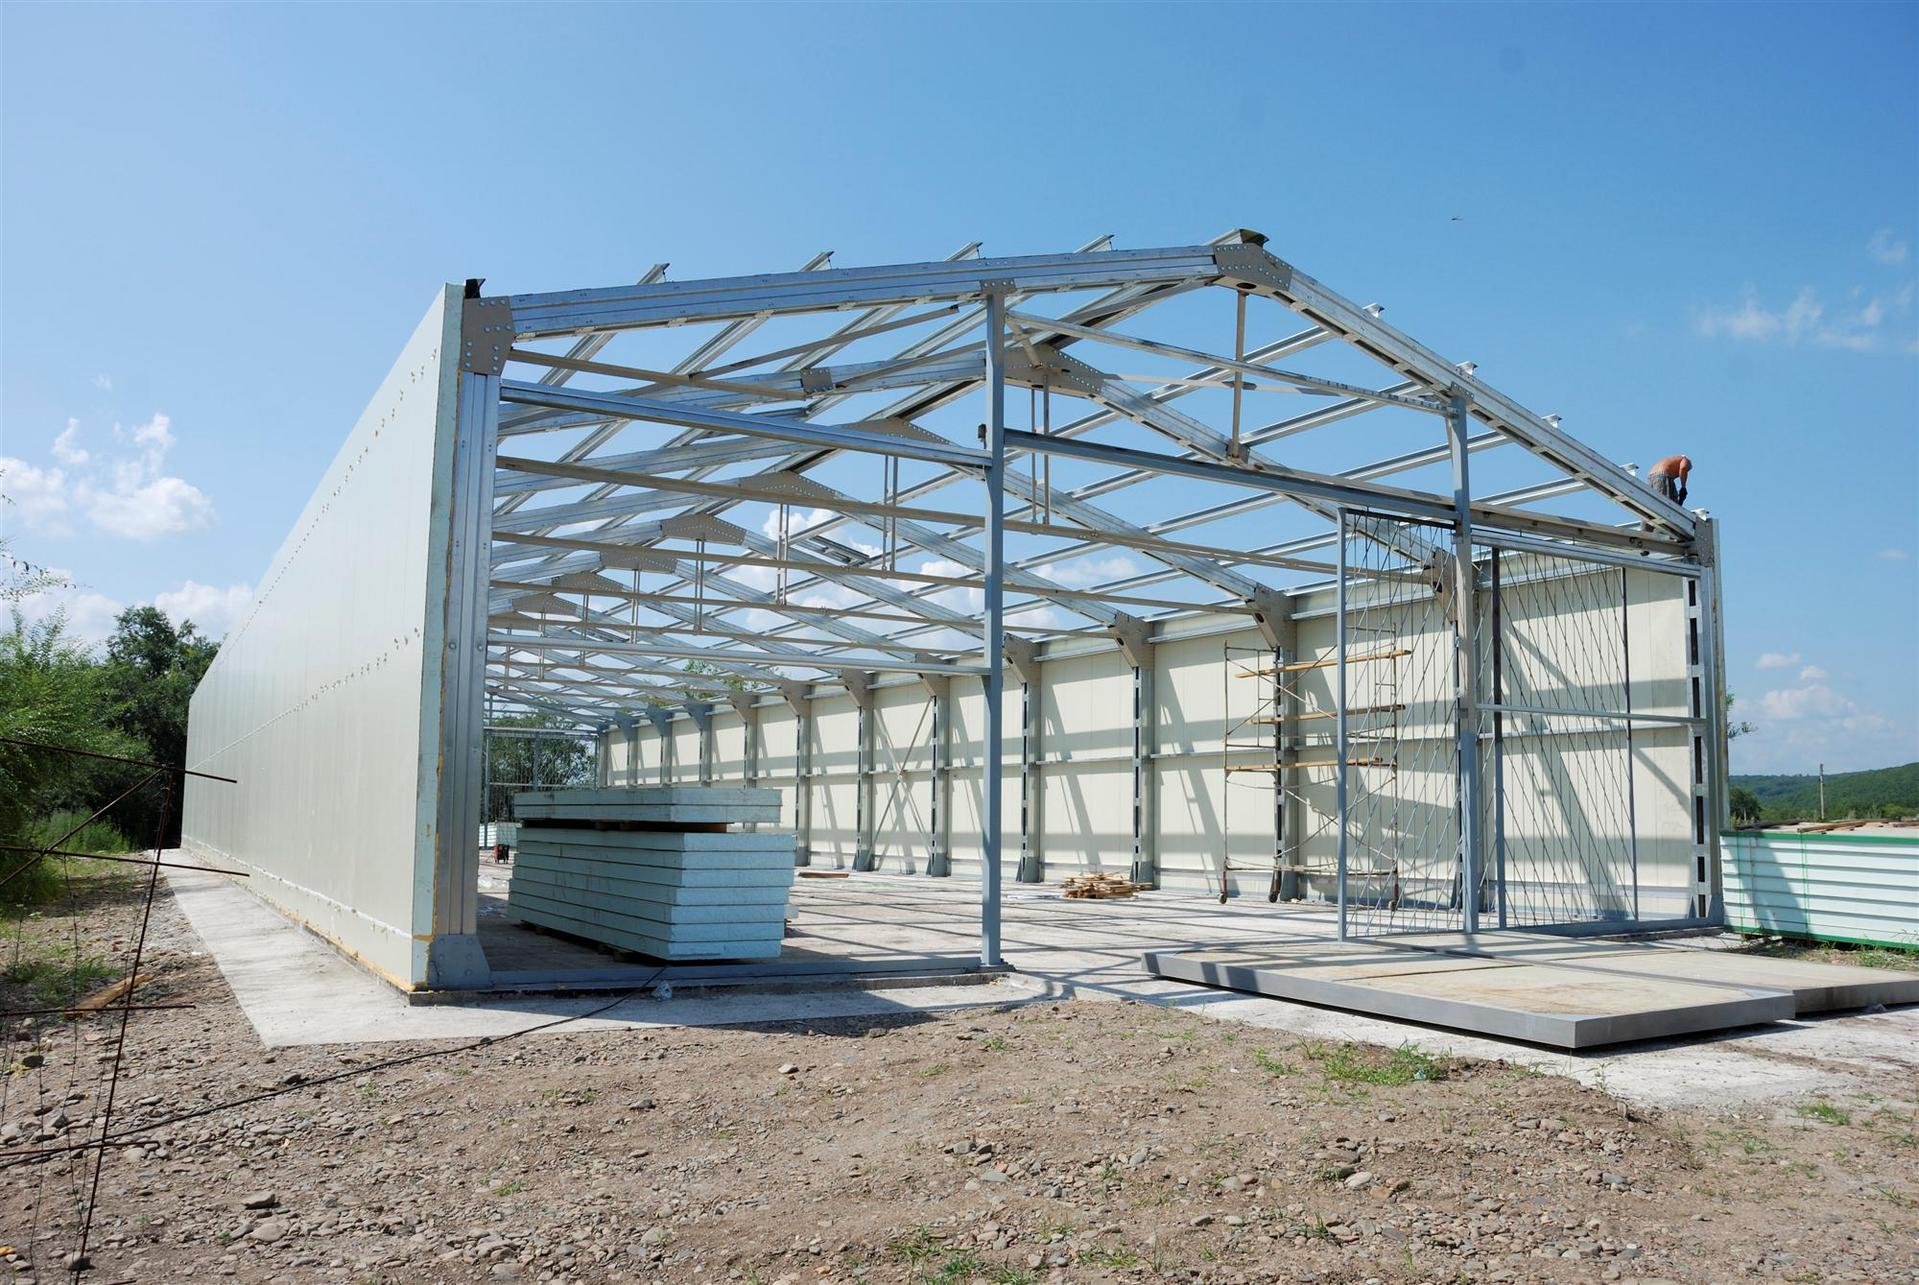 Prefabricated buildings made of light metal structures